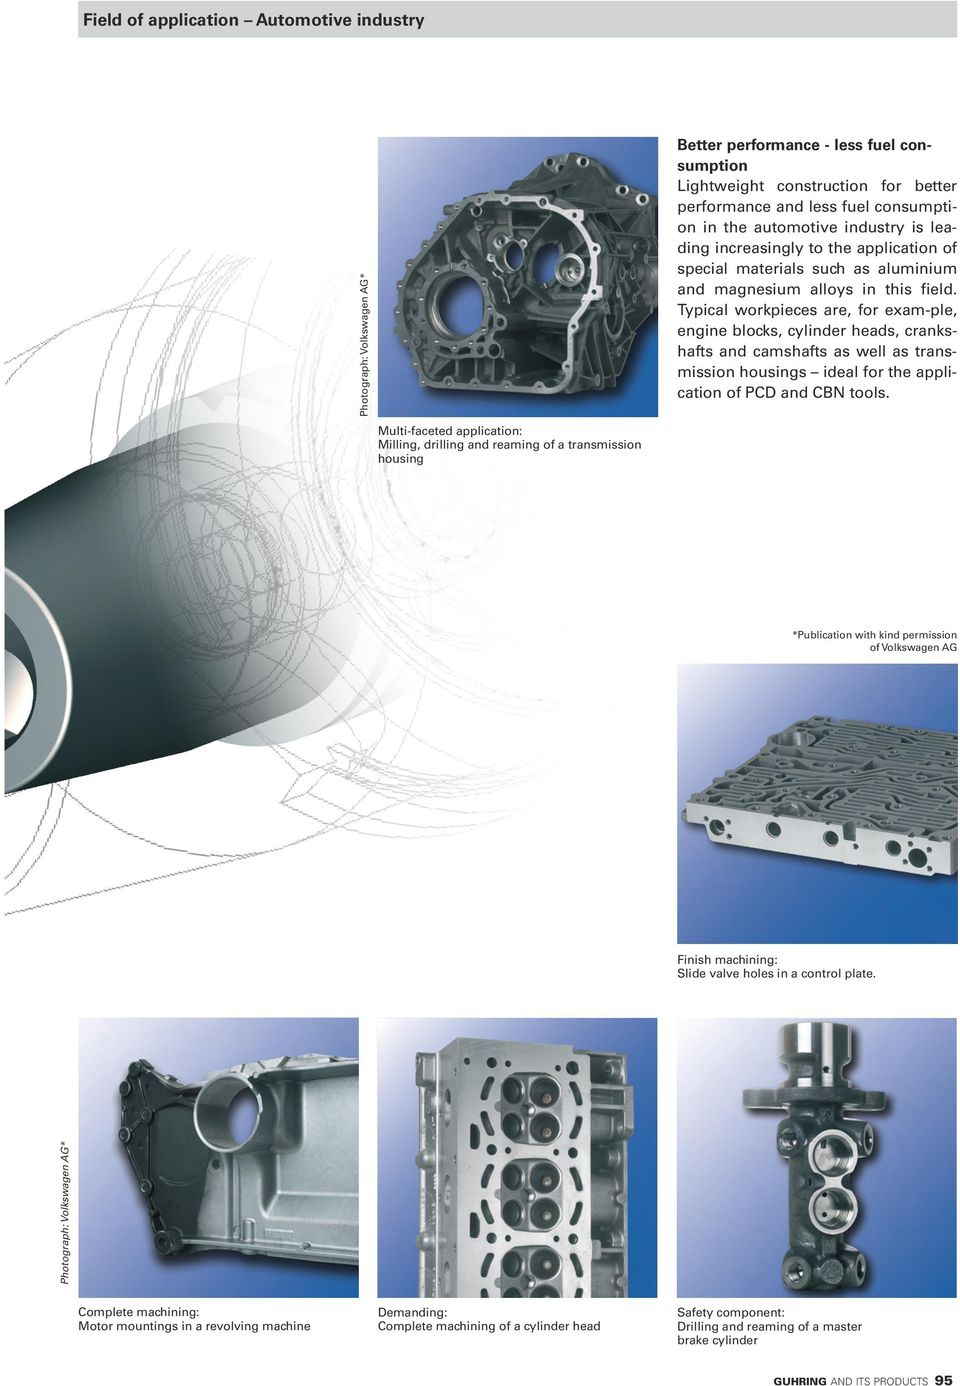 Typical workpieces are, for exam-ple, engine blocks, cylinder heads, crankshafts and camshafts as well as transmission housings ideal for the application of PCD and CBN tools.